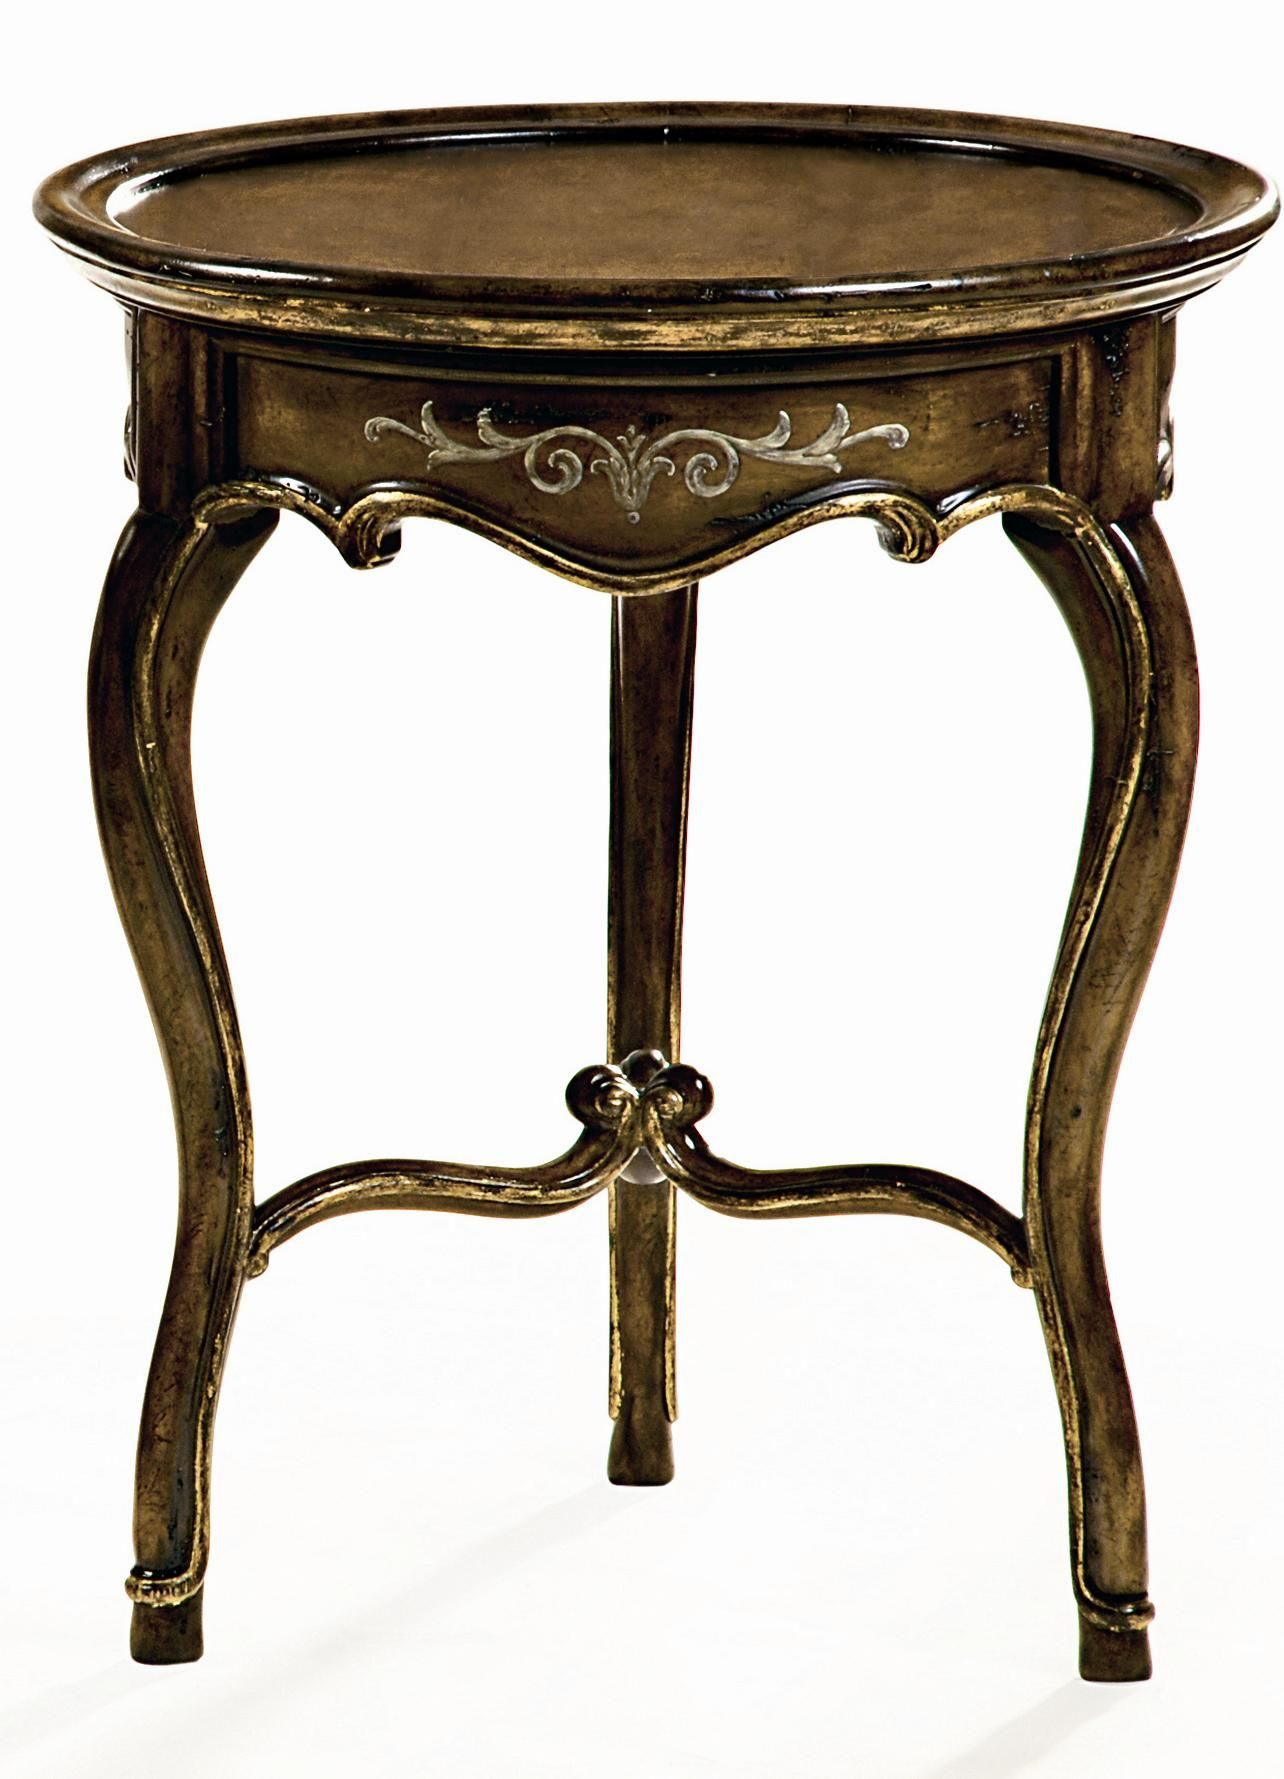 Les Marches Chairside Table By Marge Carson Marge Carson